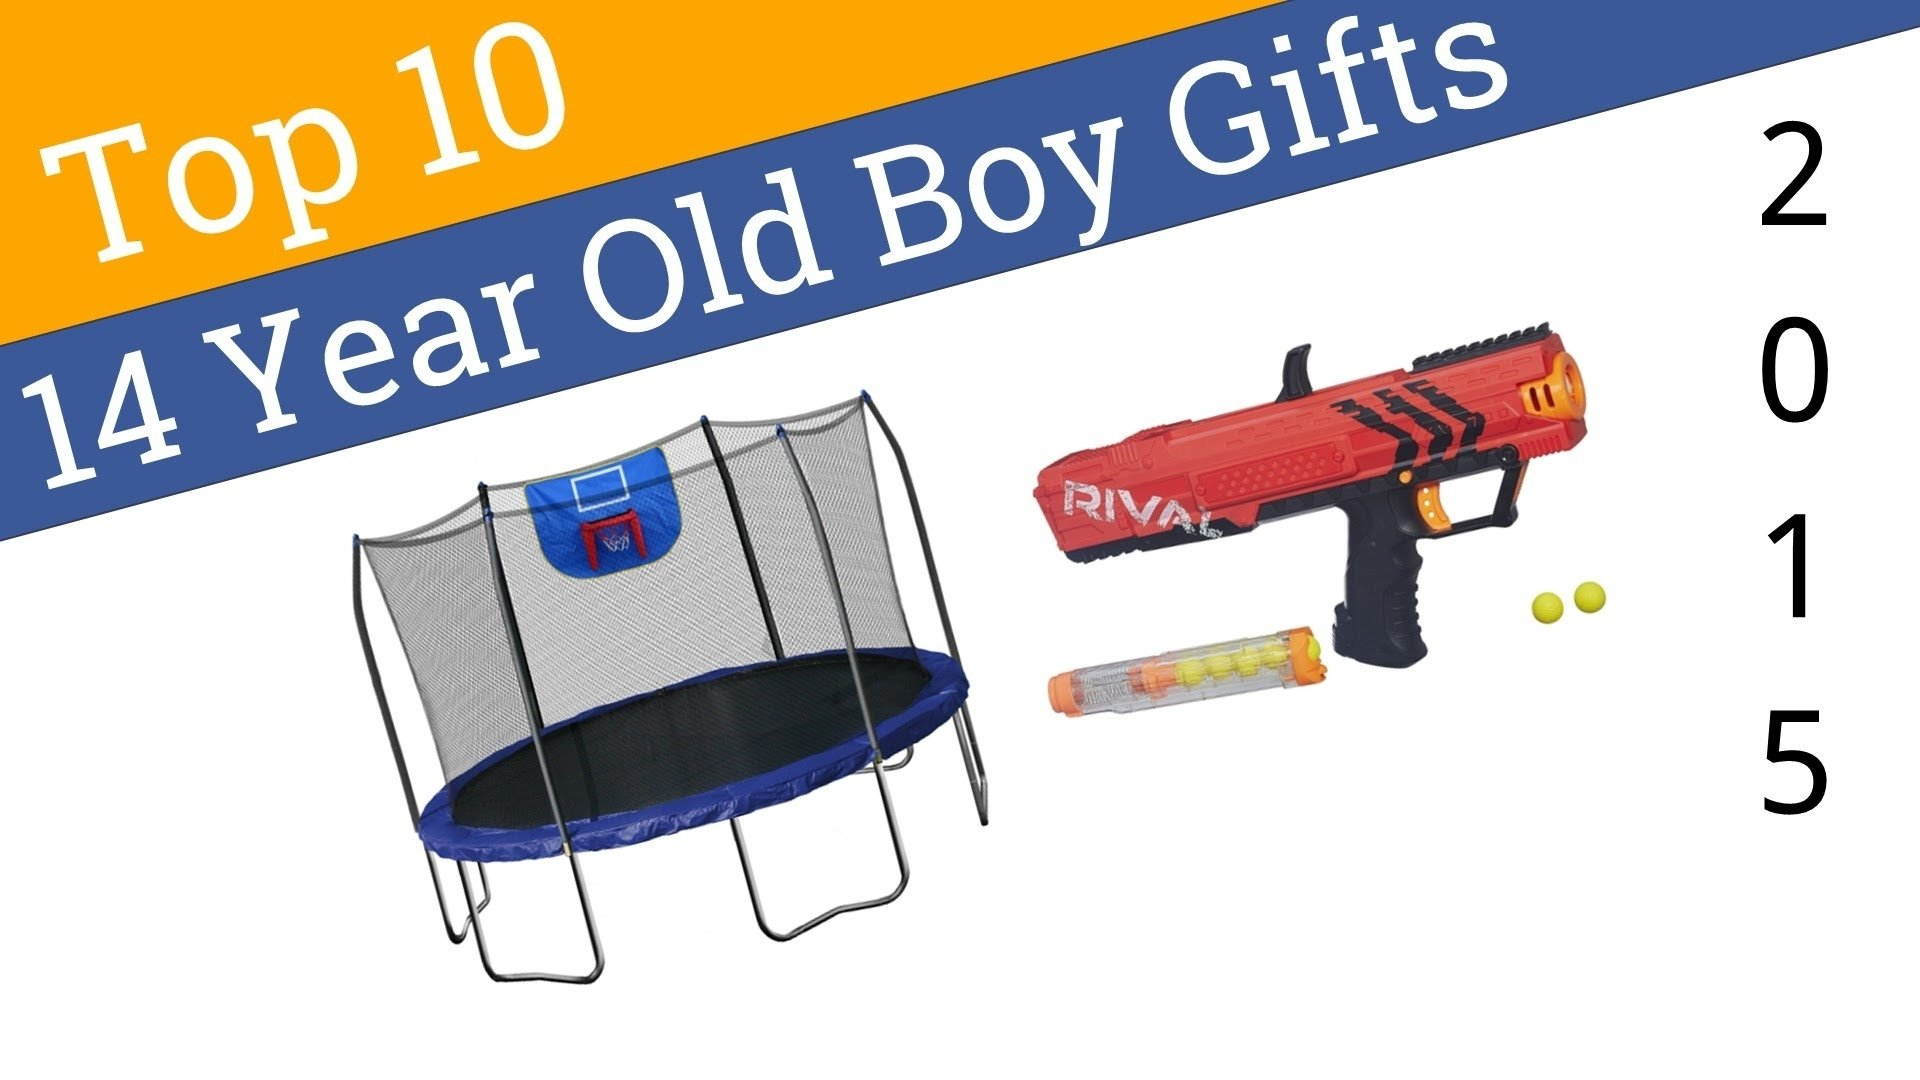 10 Perfect Gift Ideas 14 Year Old Boy 10 best 14 year old boy gifts 2015 youtube 14 2020